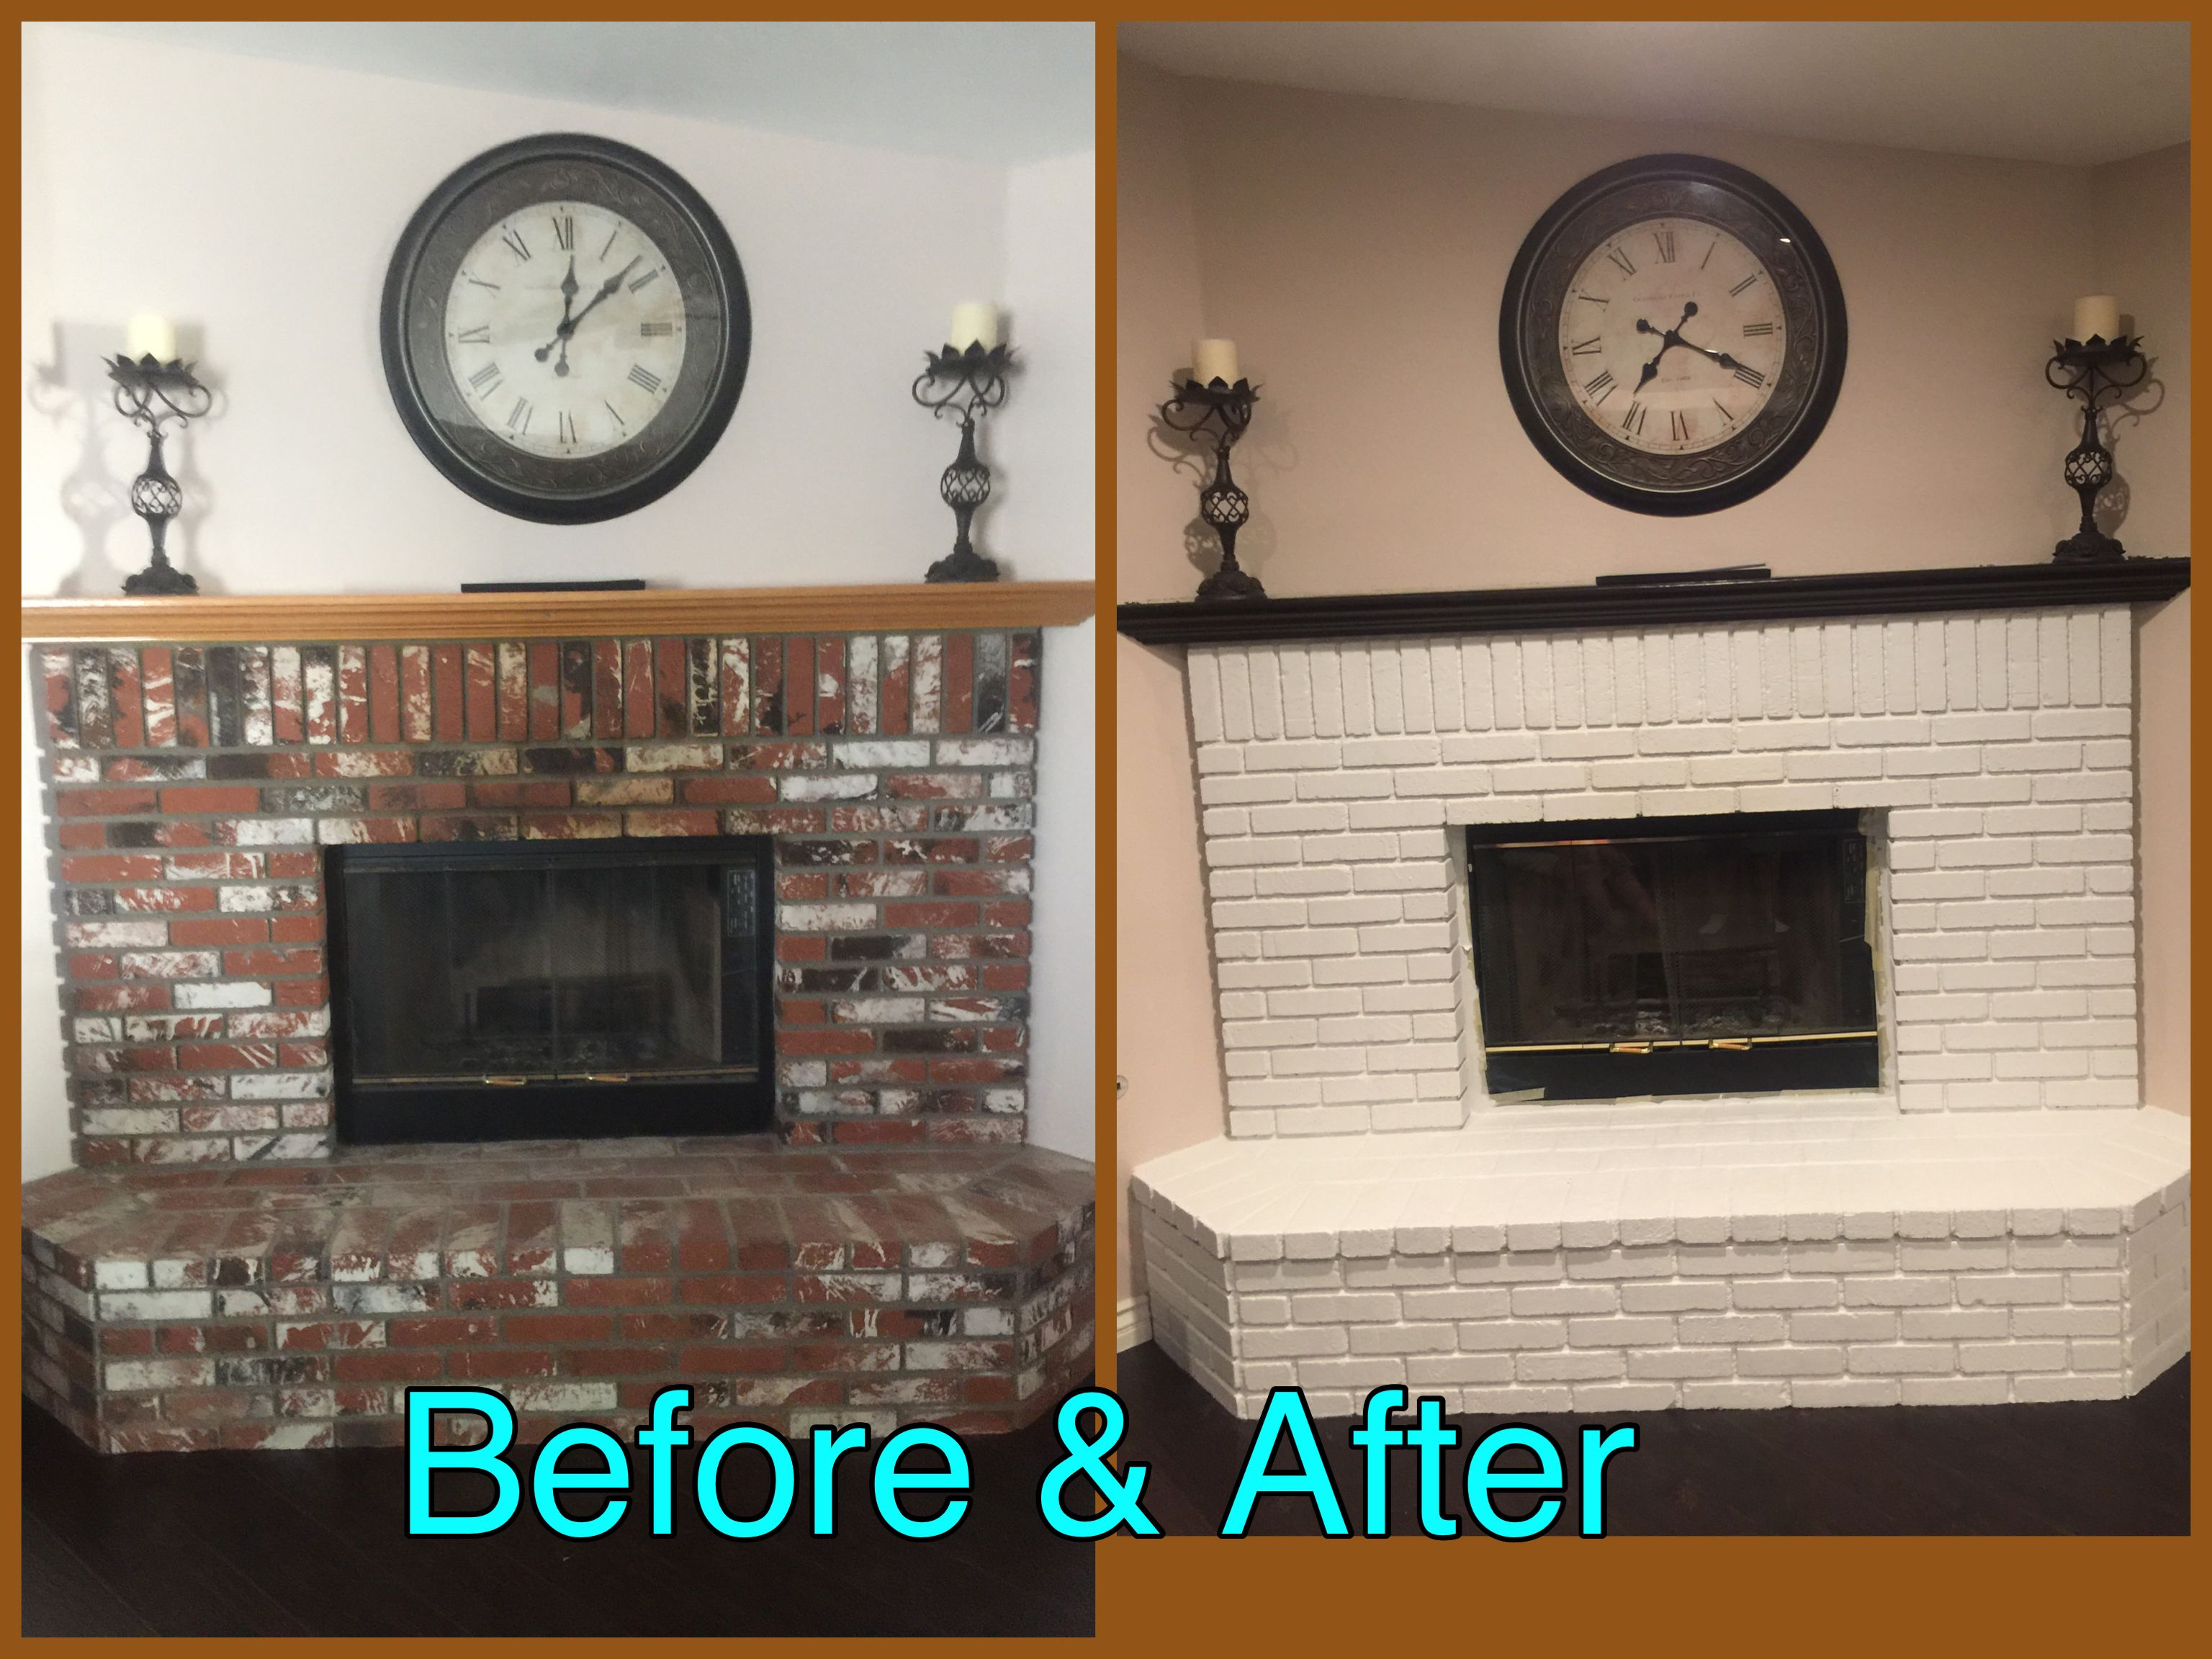 Fireplace Remodel Before & After DIY Projects